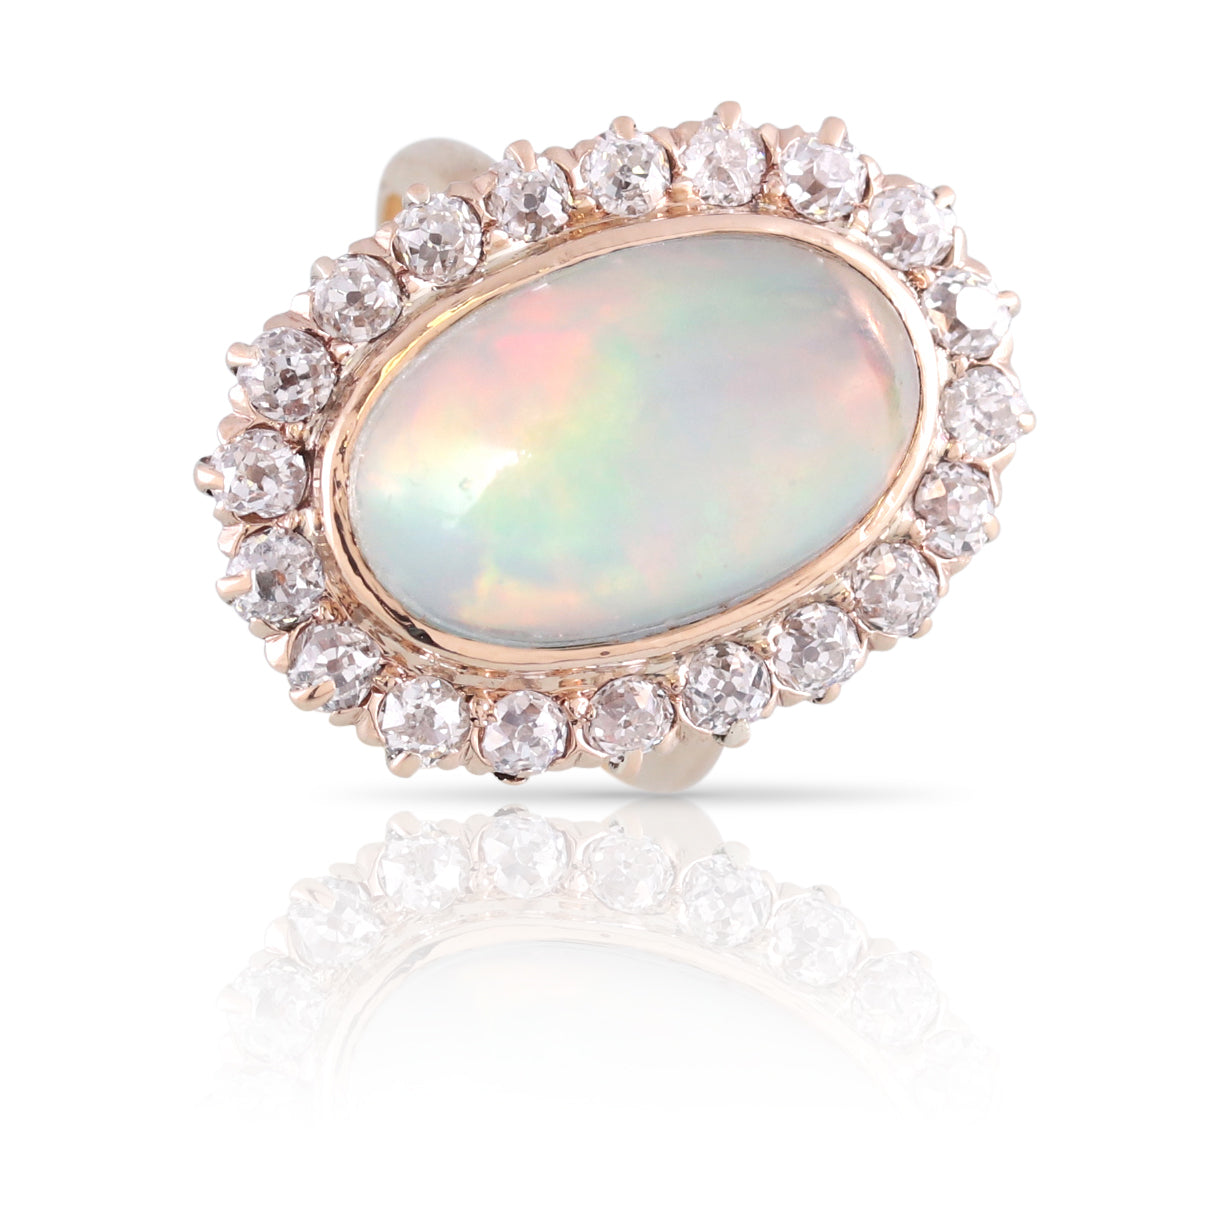 Opal and Diamond Cocktail Ring | The Jemima